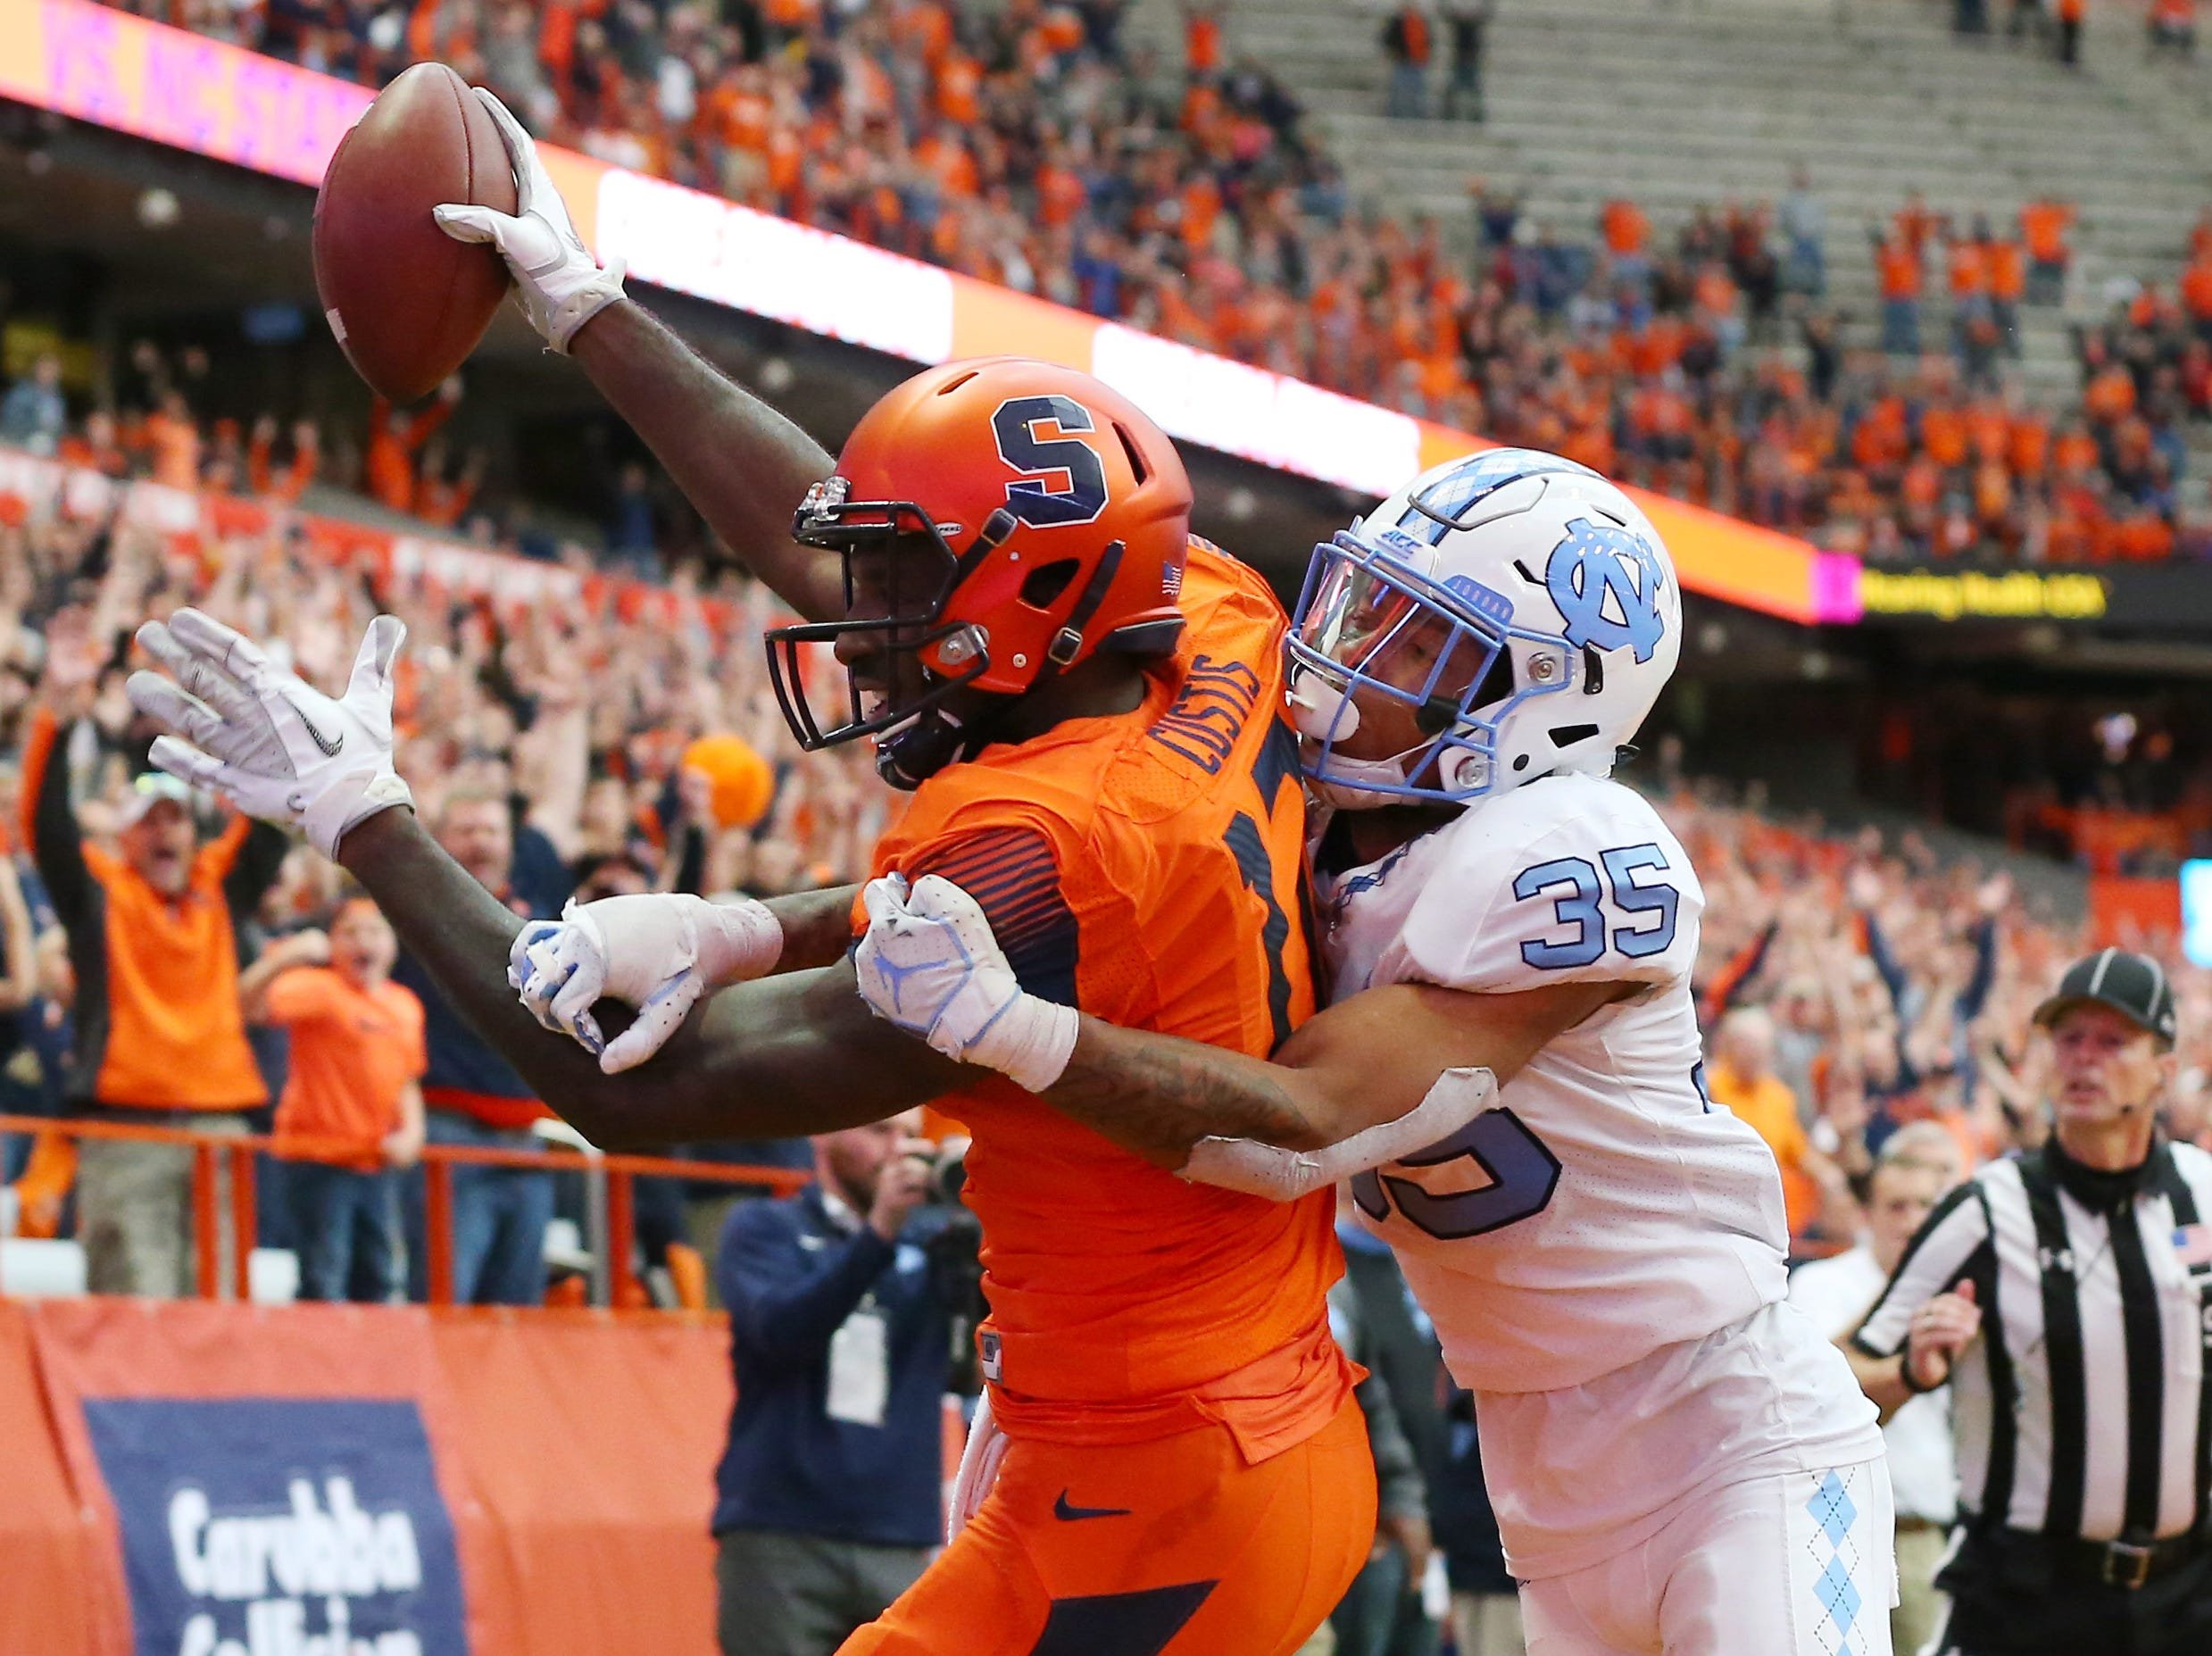 Syracuse Orange wide receiver Jamal Custis (17) catches a pass for a touchdown in overtime as North Carolina Tar Heels cornerback Greg Ross (35) defends at the Carrier Dome.